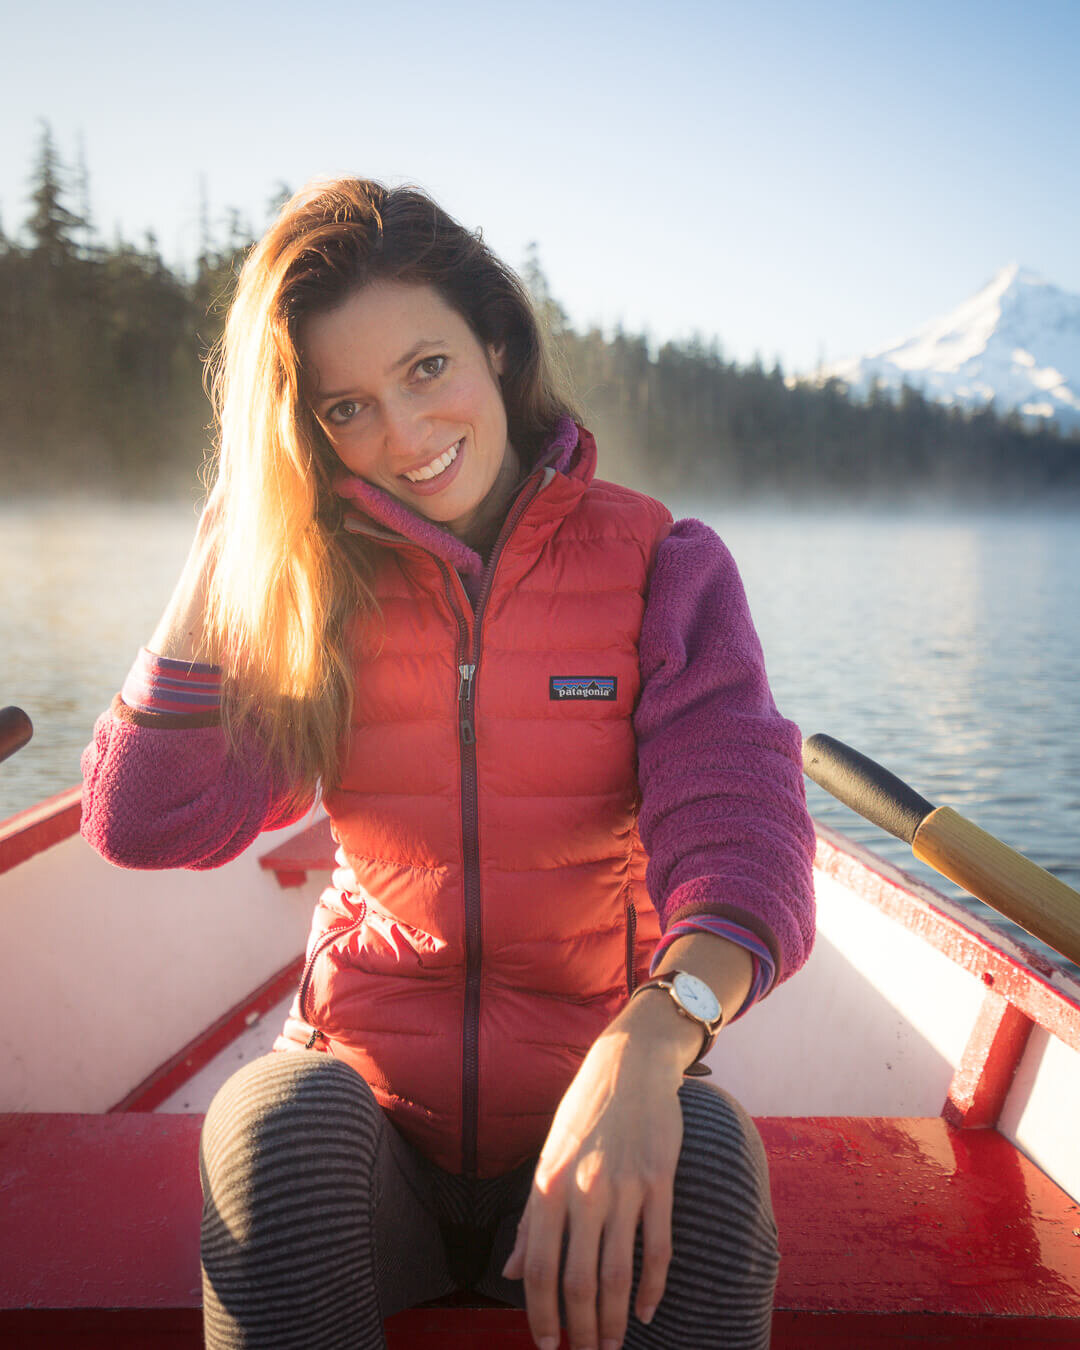 Patagonia has a long history of prioritizing sustainability in their outdoor clothing. Wearing:  Patagonia Down Sweater Vest  over the  Patagonia Re-Tool Snap-T Fleece Pullover .